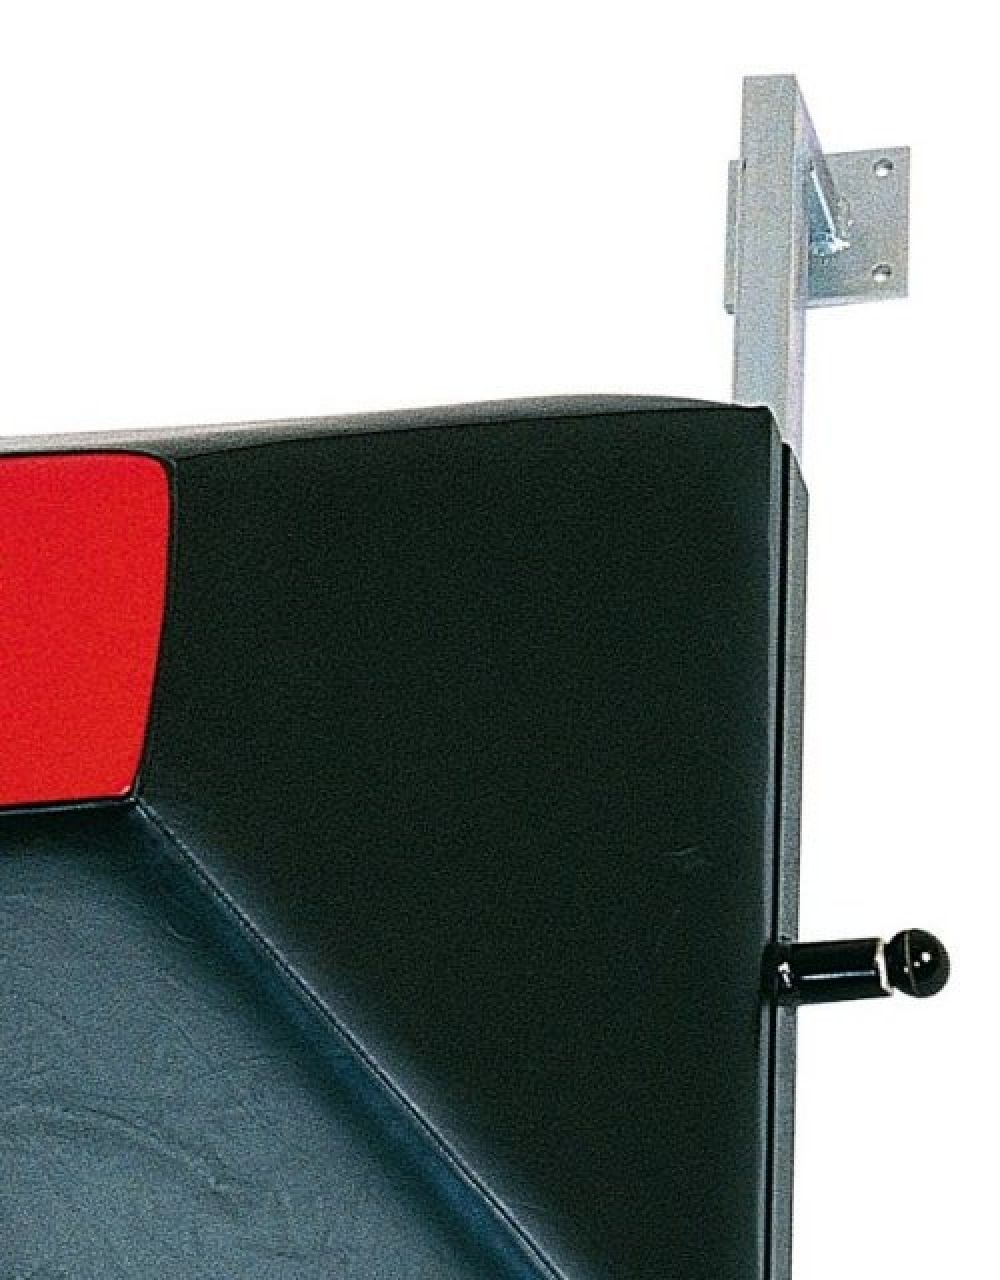 Adjustable Wall Mount Target - black/red